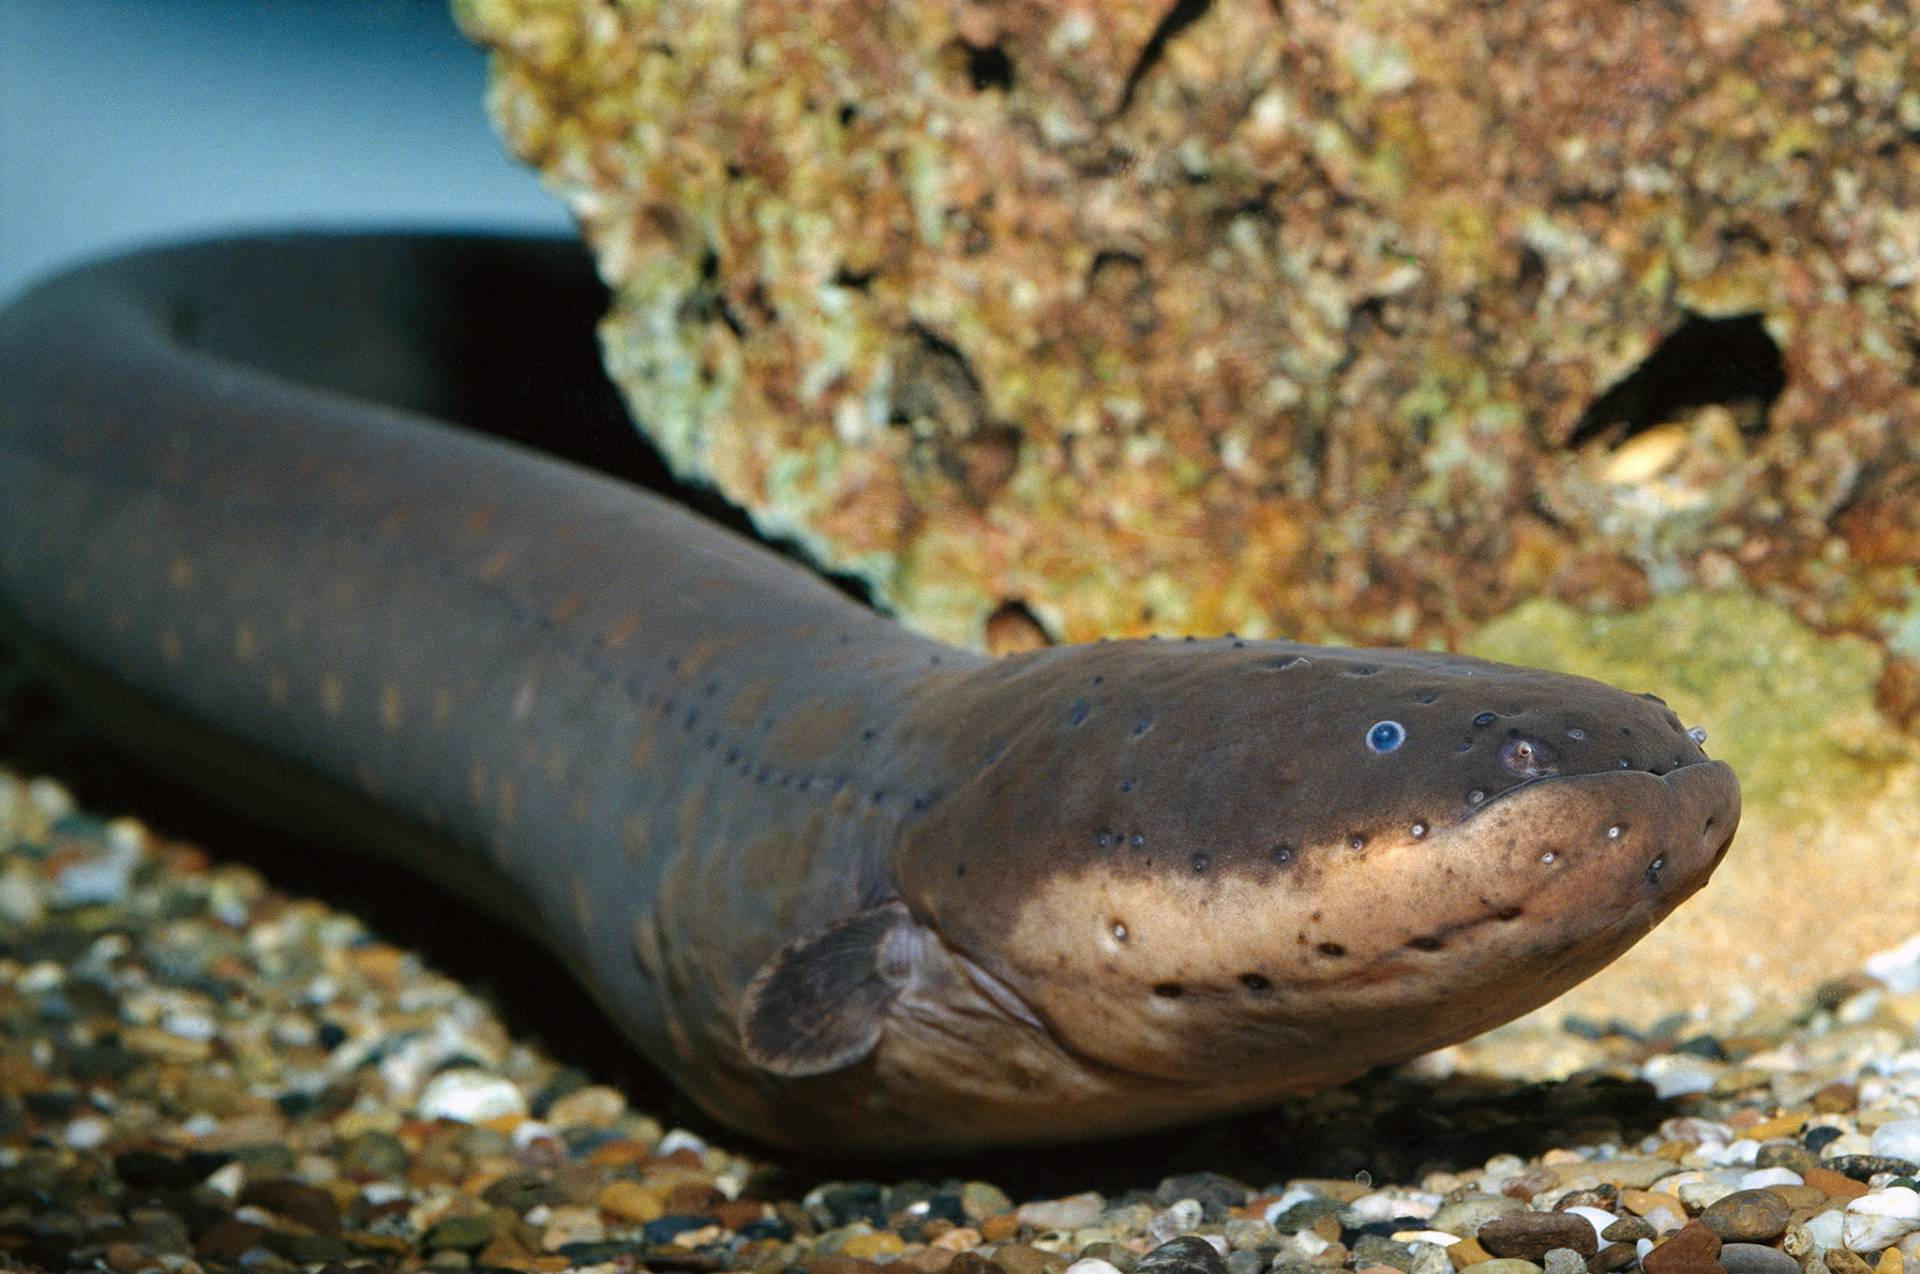 The Electric Eel (Electrophorus electricus) can generate up to 220 volts in fresh water. Image Credit: National Geographic